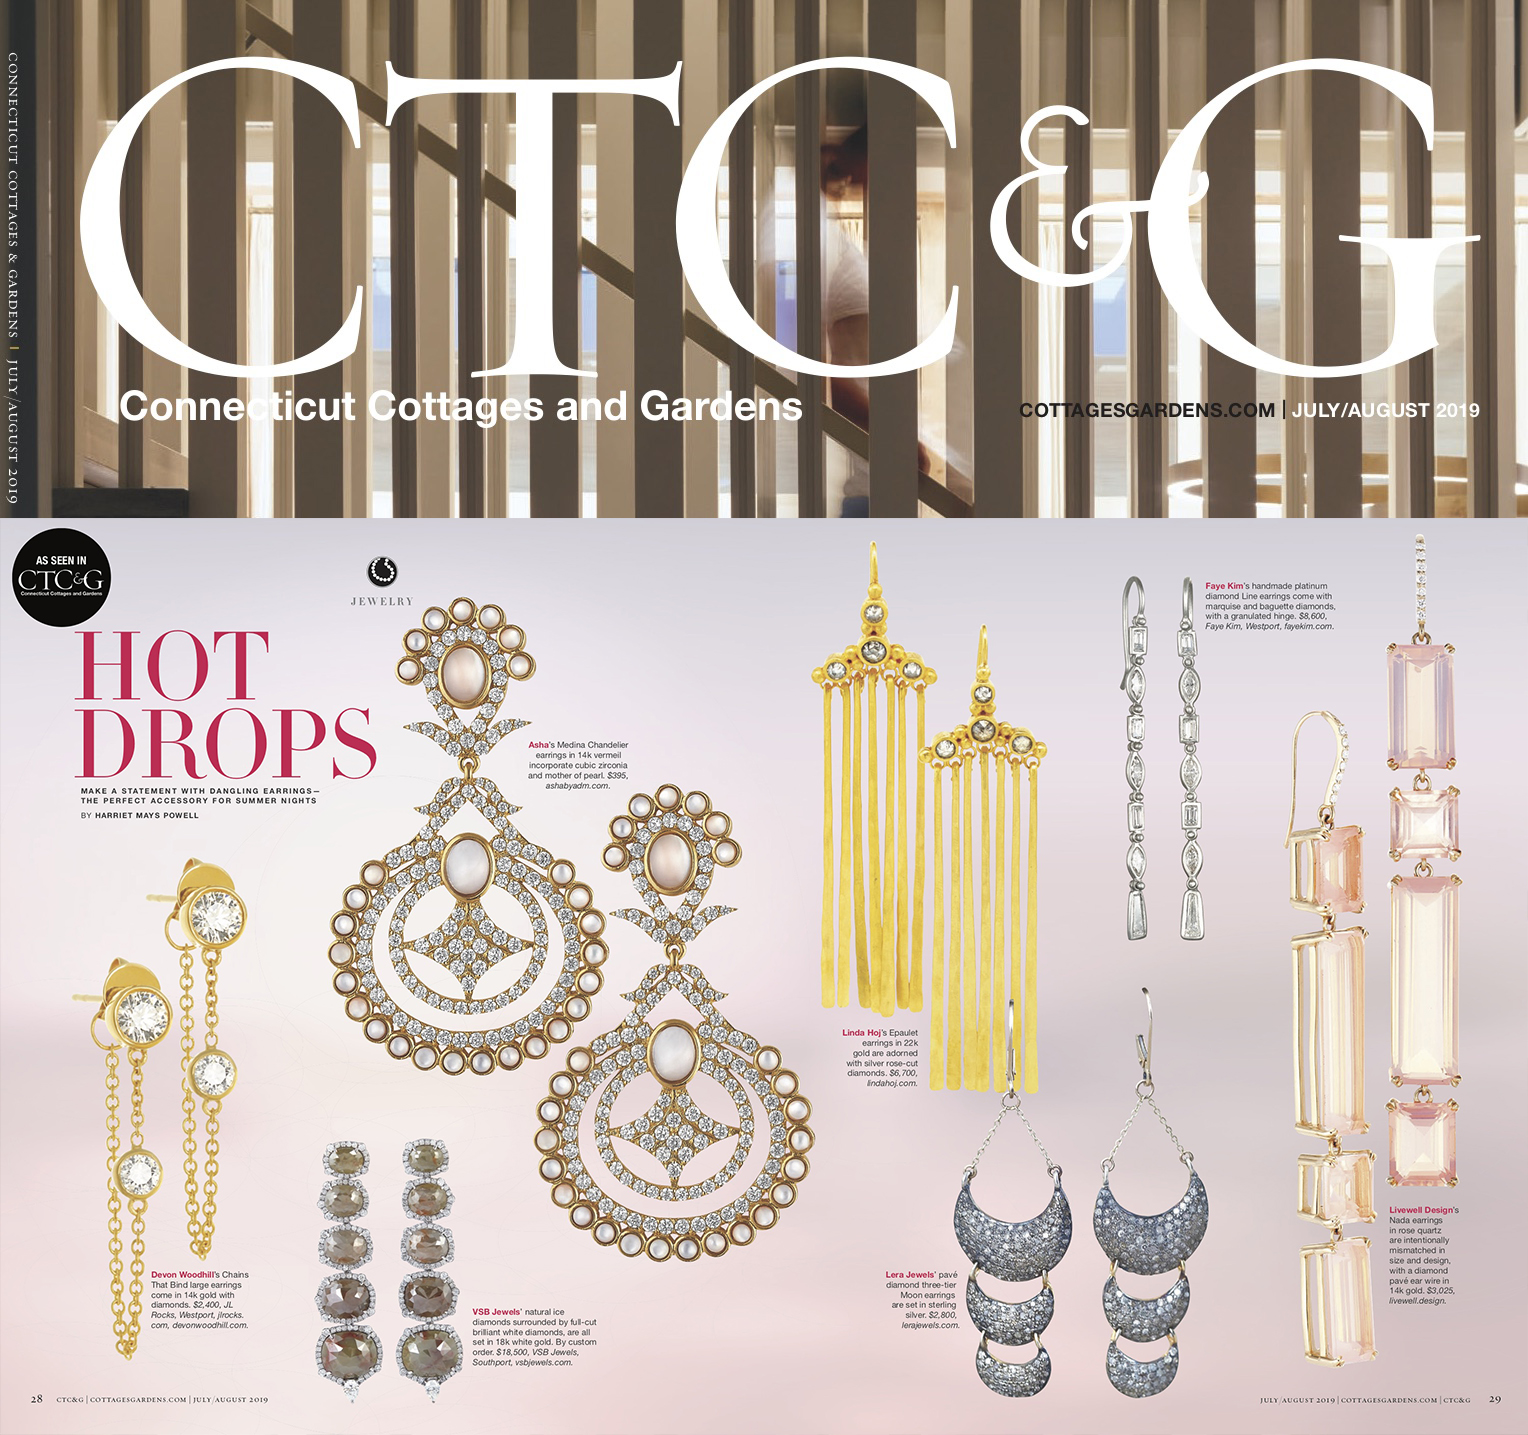 "Connecticut Cottages and Gardens | July/August 2019 - 22k gold ""Epaulet"" earrings featured in collection of statement dangling earrings for summer."